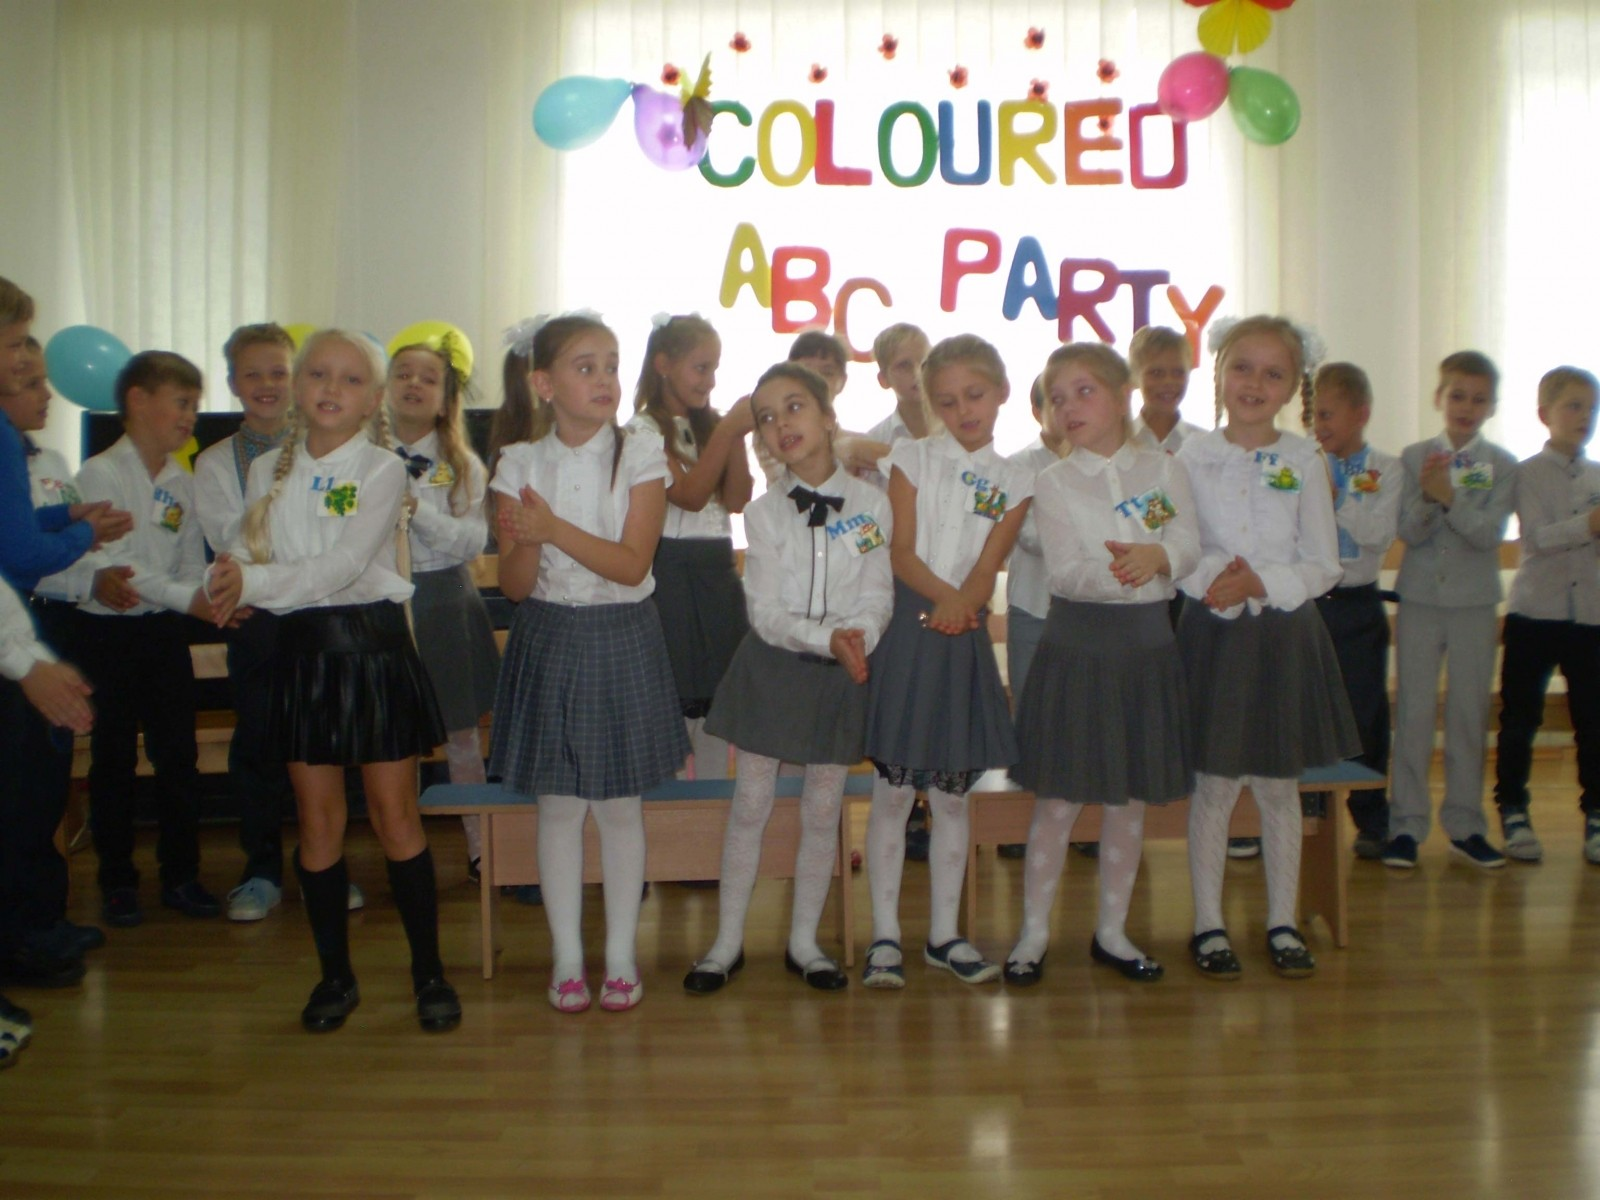 Coloured-ABC-Party-4